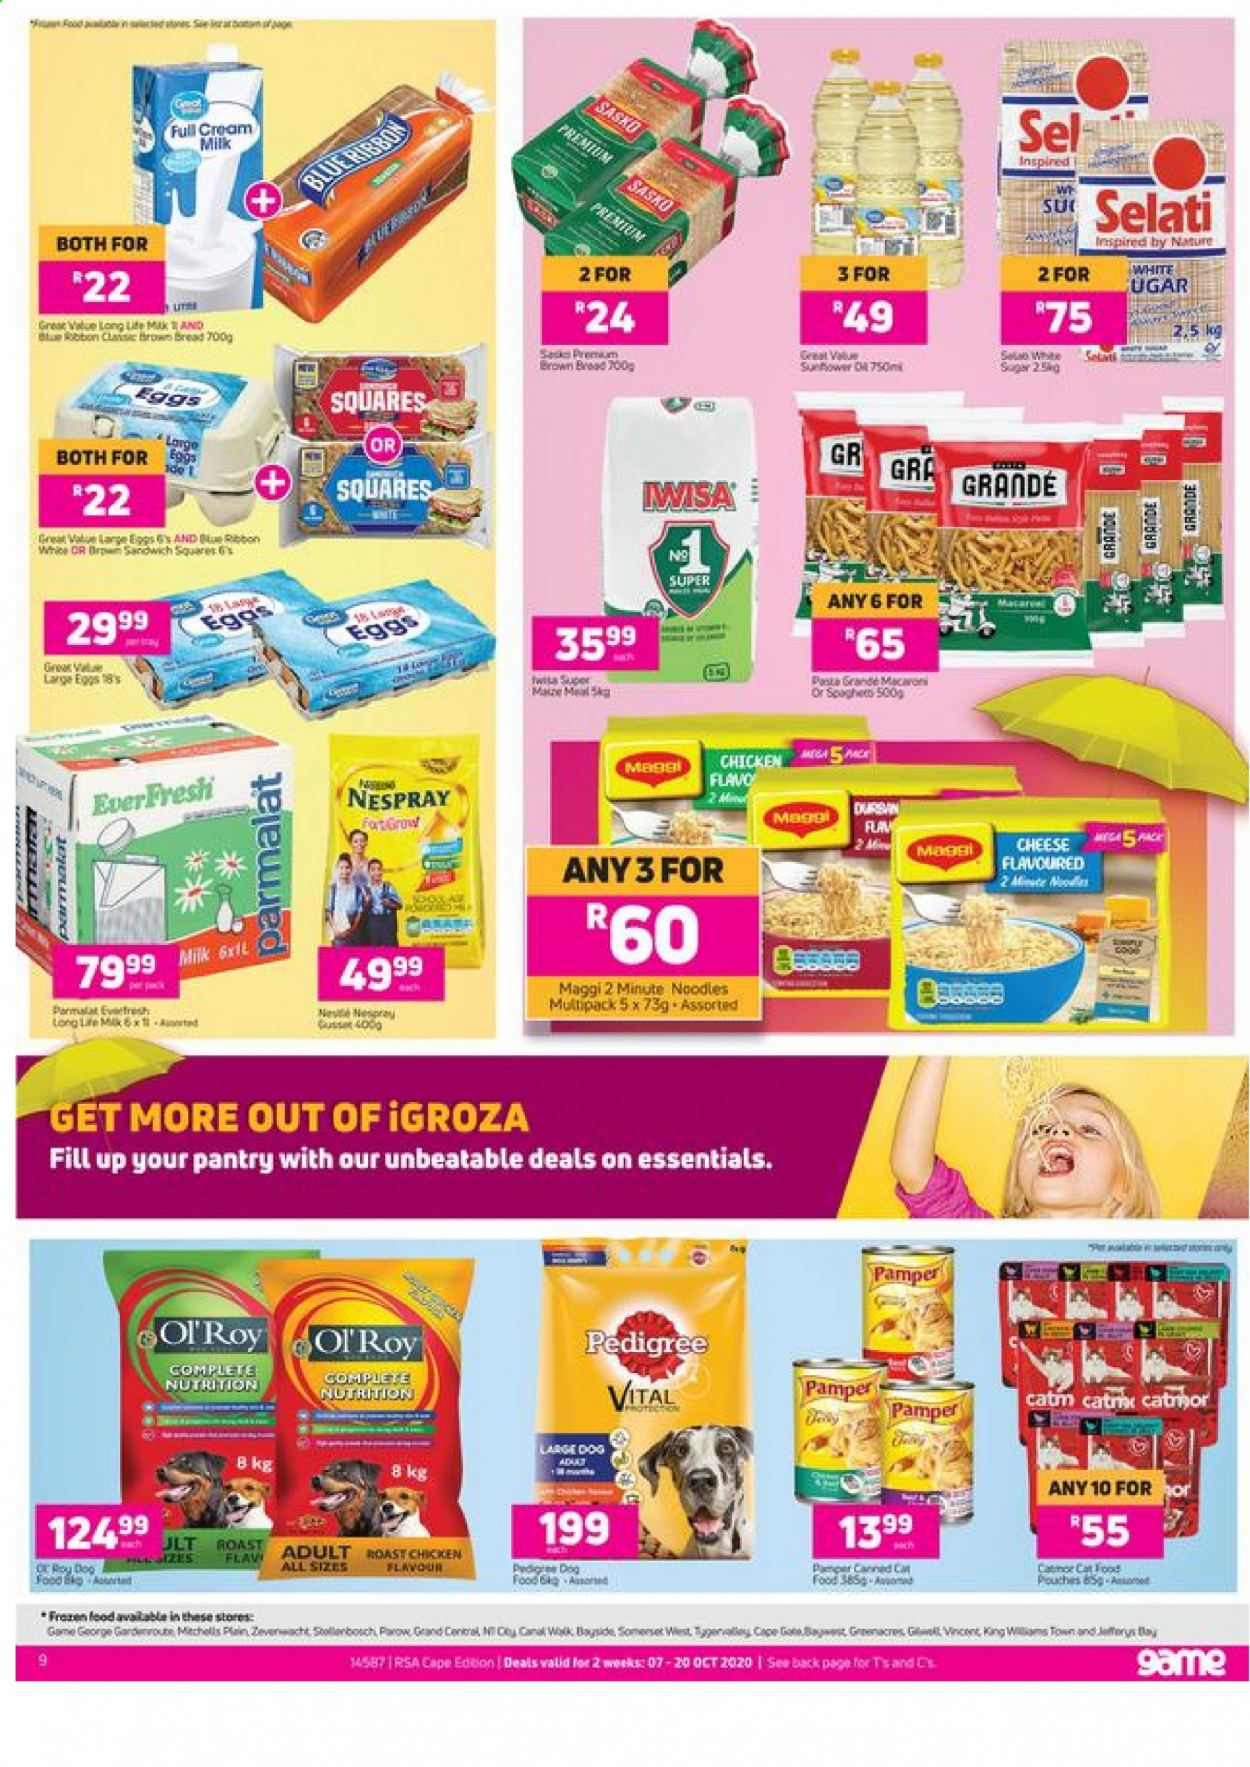 Game catalogue  - 10.07.2020 - 10.20.2020 - Sales products - bread, cat food, cream, dog food, eggs, gra, grand, milk, sugar, chicken, noodles, macaroni, pasta, game, cheese, maggi, ribbon, roast, essentials. Page 1.